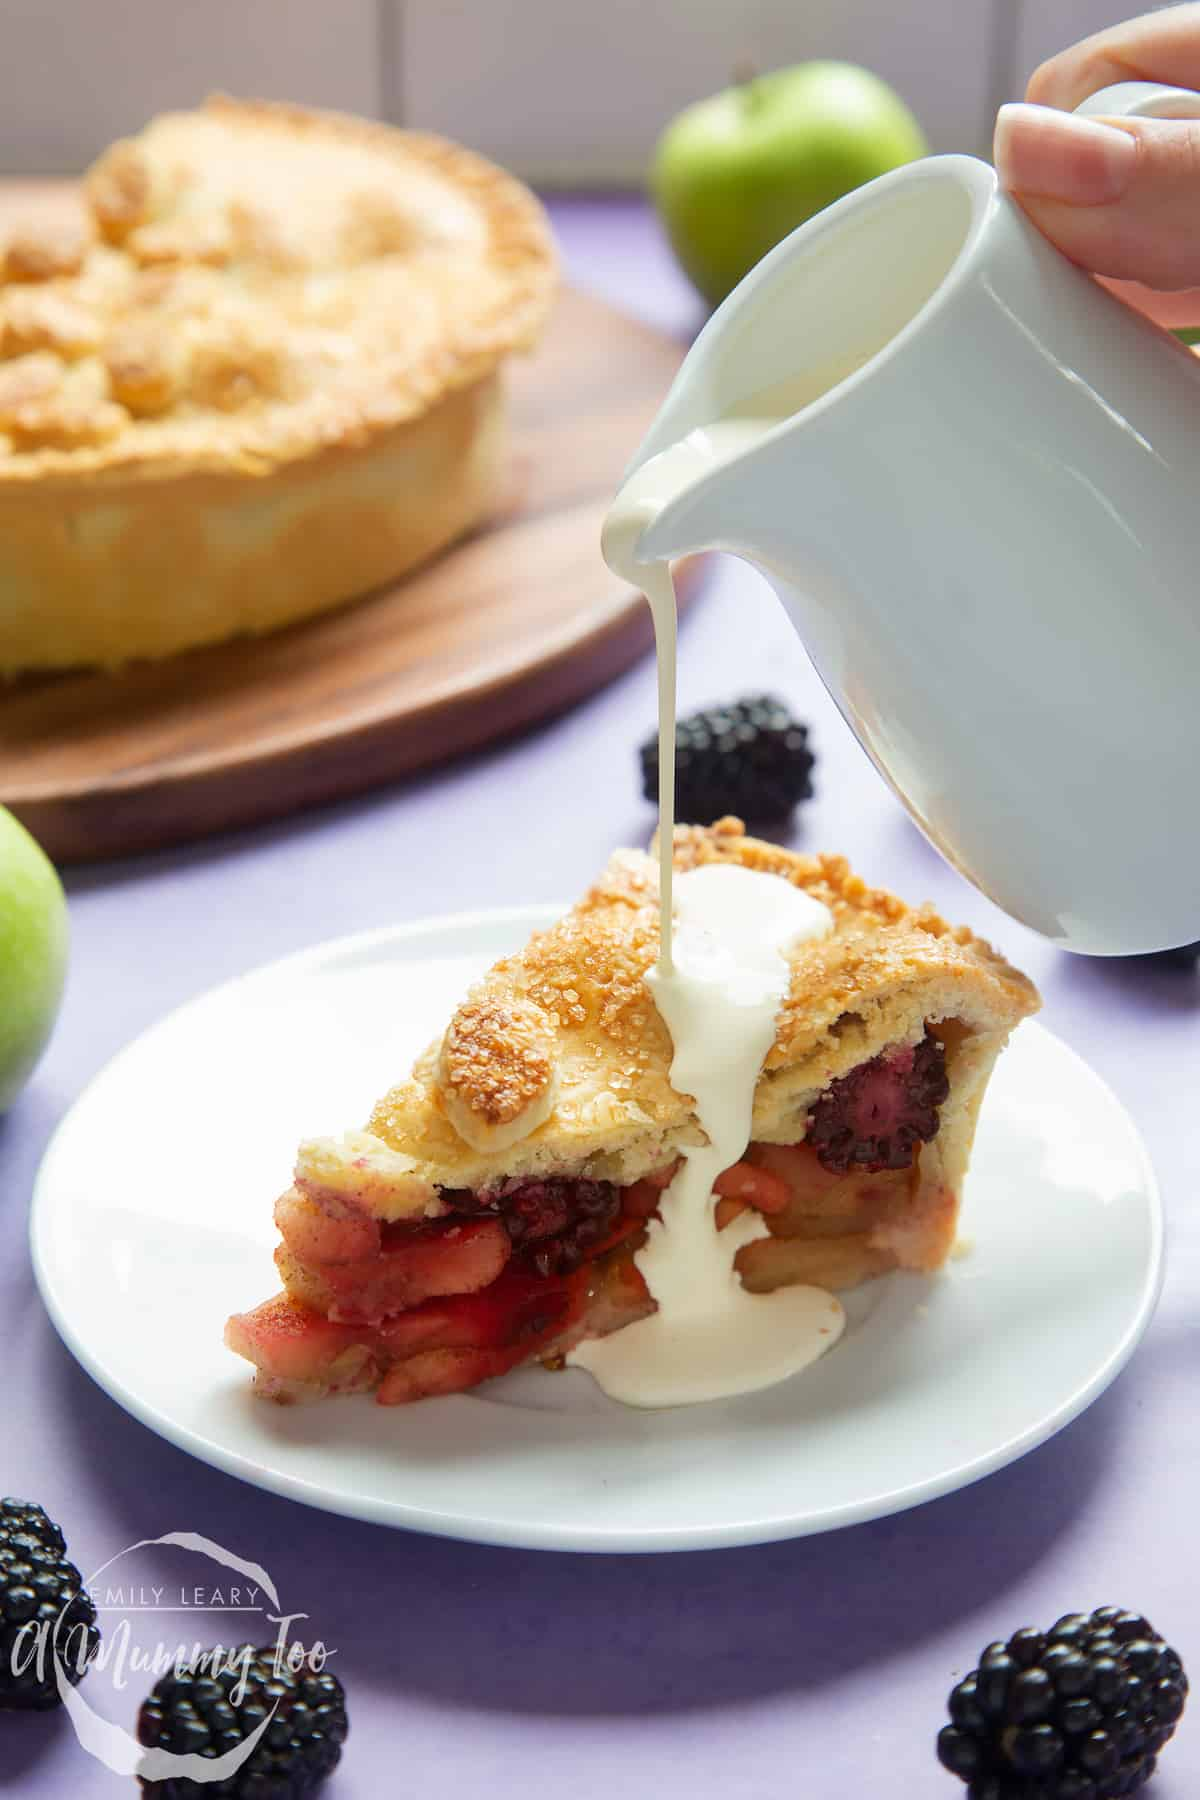 A slice of apple and blackberry pie on a white plate. A small white jug pours cream onto the pie.